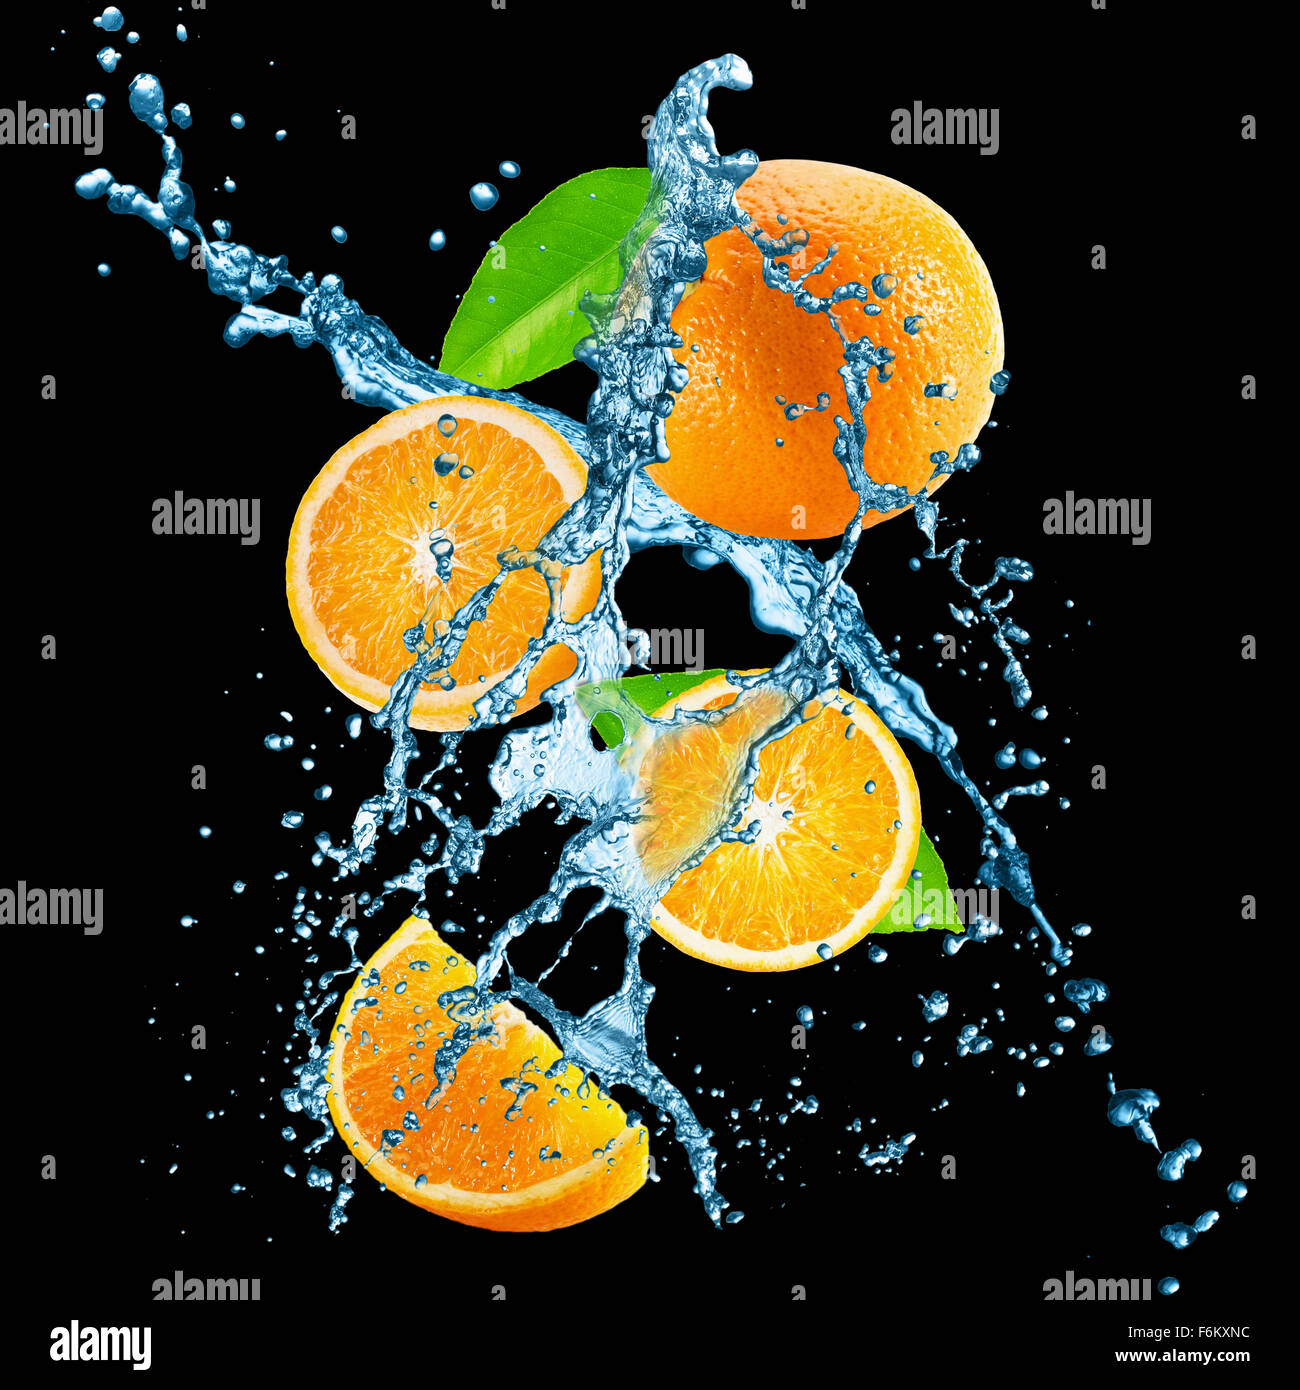 oranges with water splash on the black background. - Stock Image